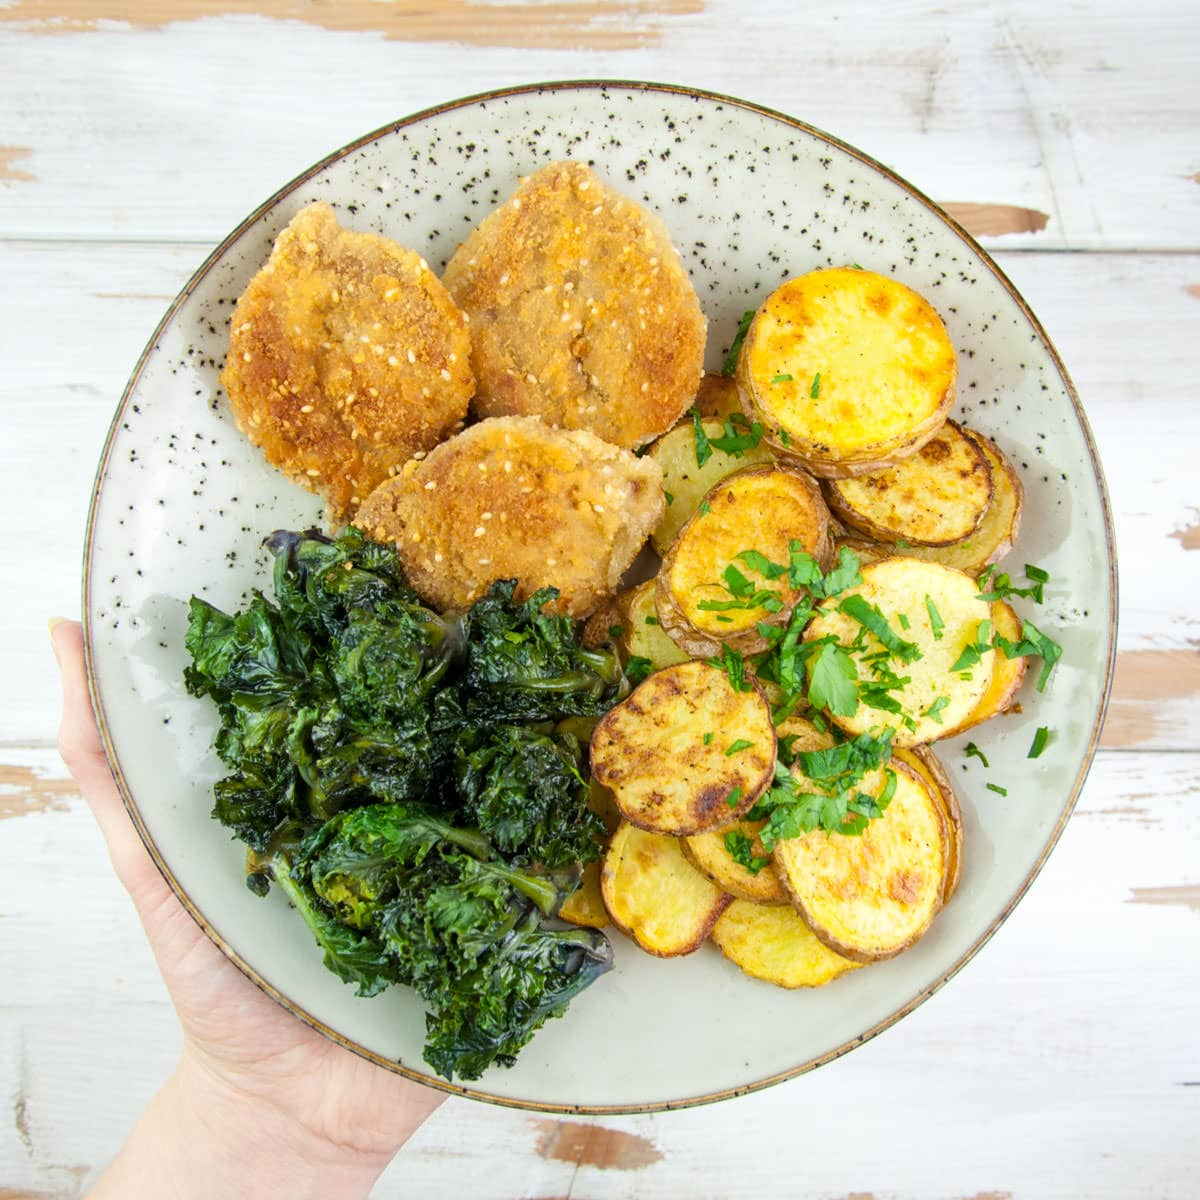 Kalettes, Schnitzel and oven-baked potato slices